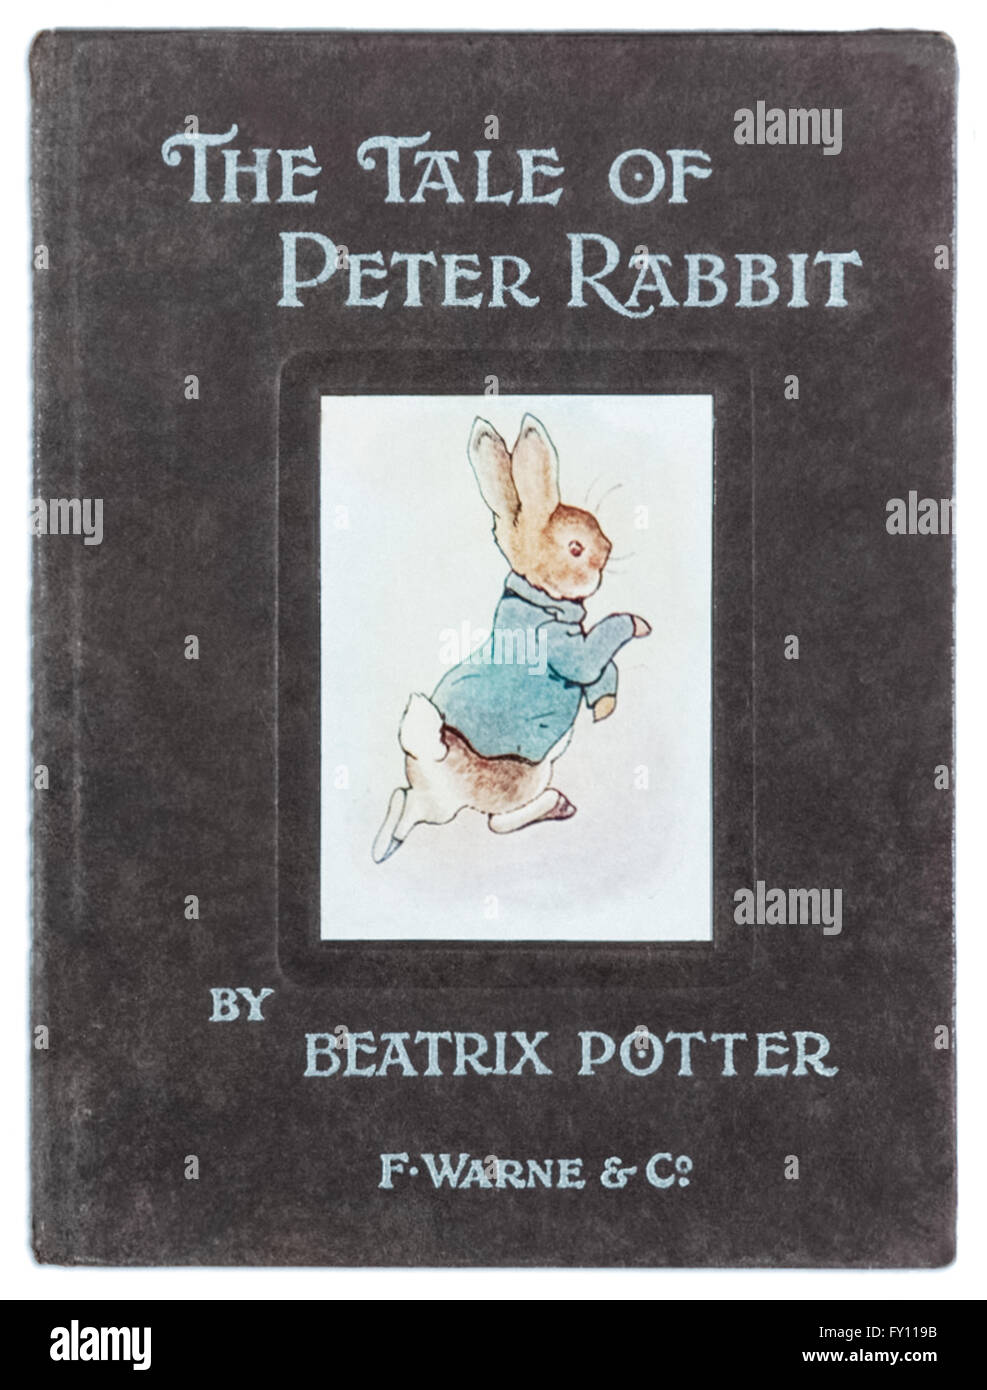 Front cover of 'The Tale of Peter Rabbit' by Beatrix Potter (1866-1943), first commercial edition published by F. - Stock Image